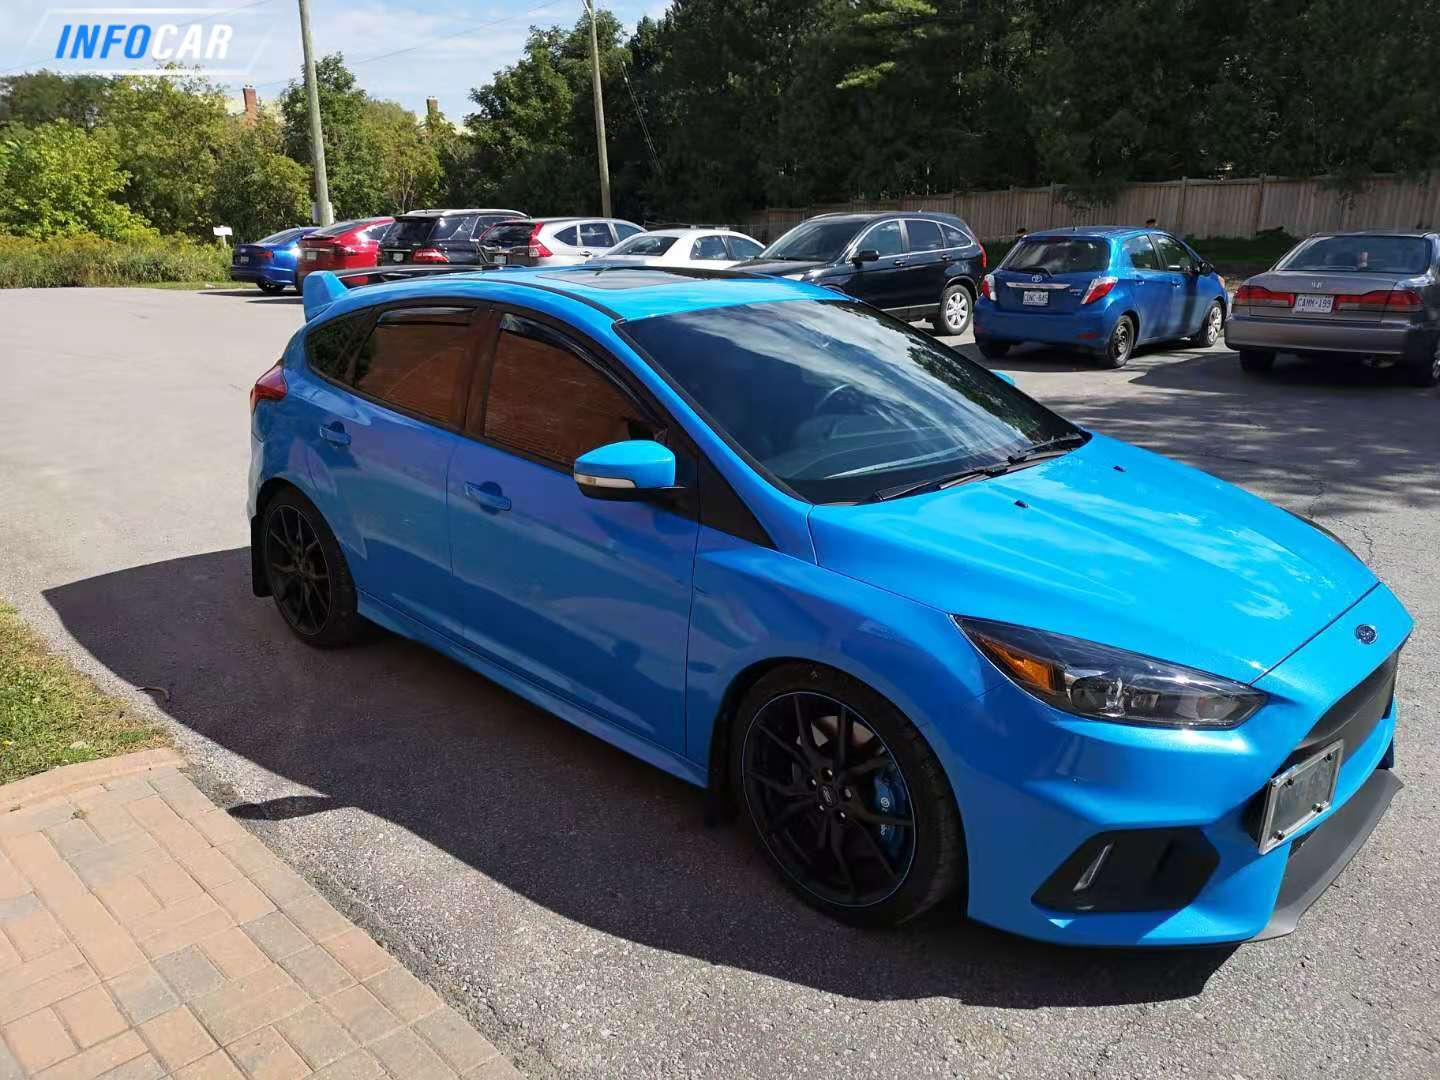 2017 Ford Focus RS - INFOCAR - Toronto's Most Comprehensive New and Used Auto Trading Platform